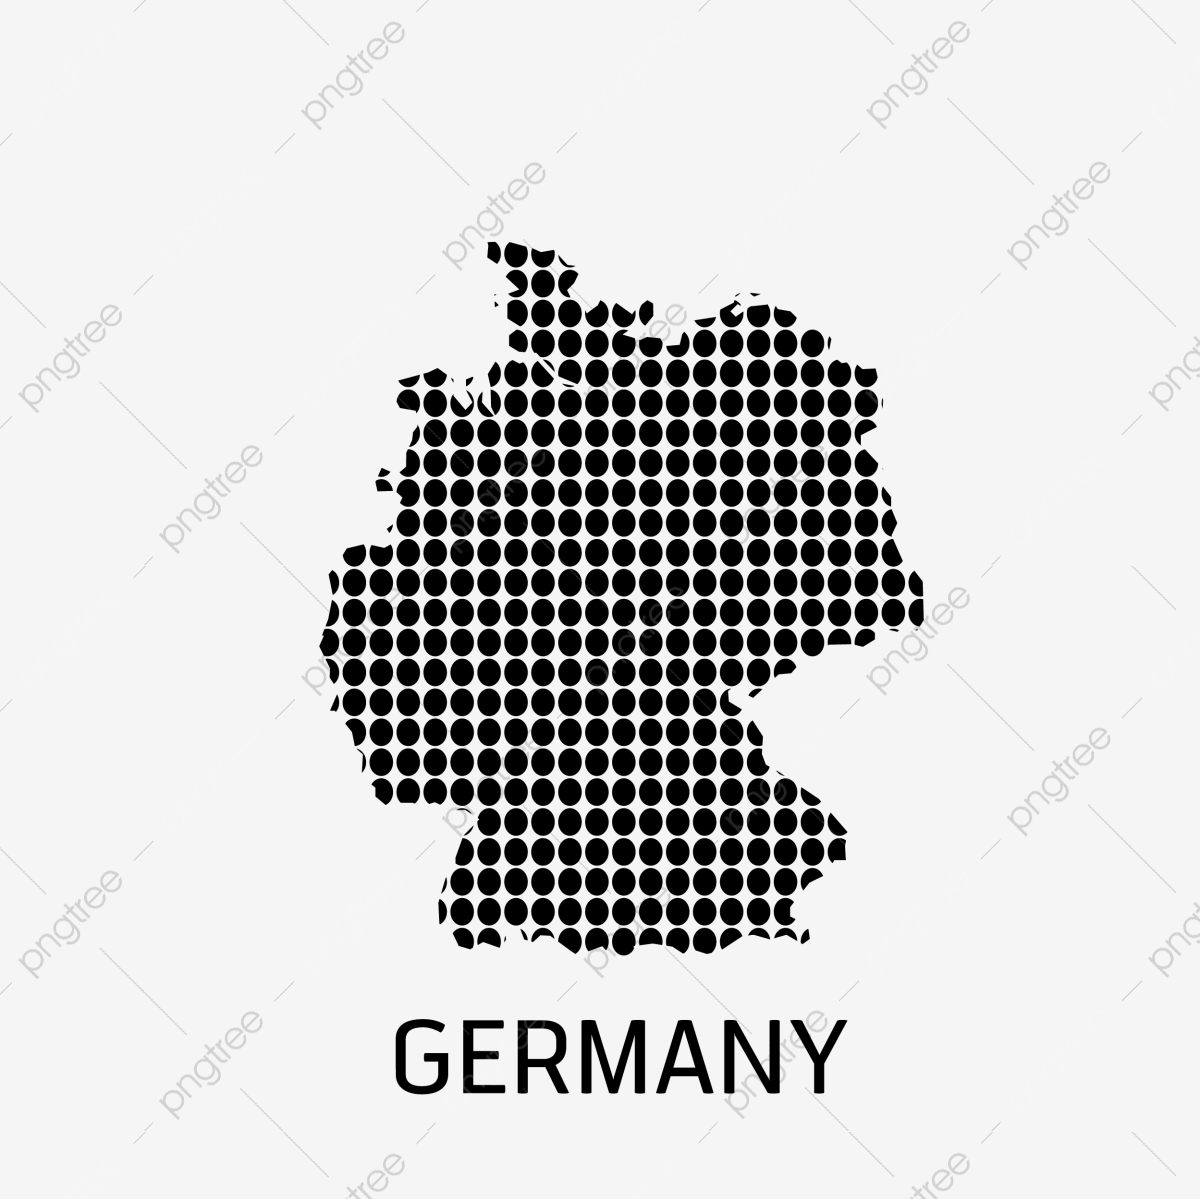 Map Of The World Germany.Germany Map Germany Map World Png And Vector With Transparent